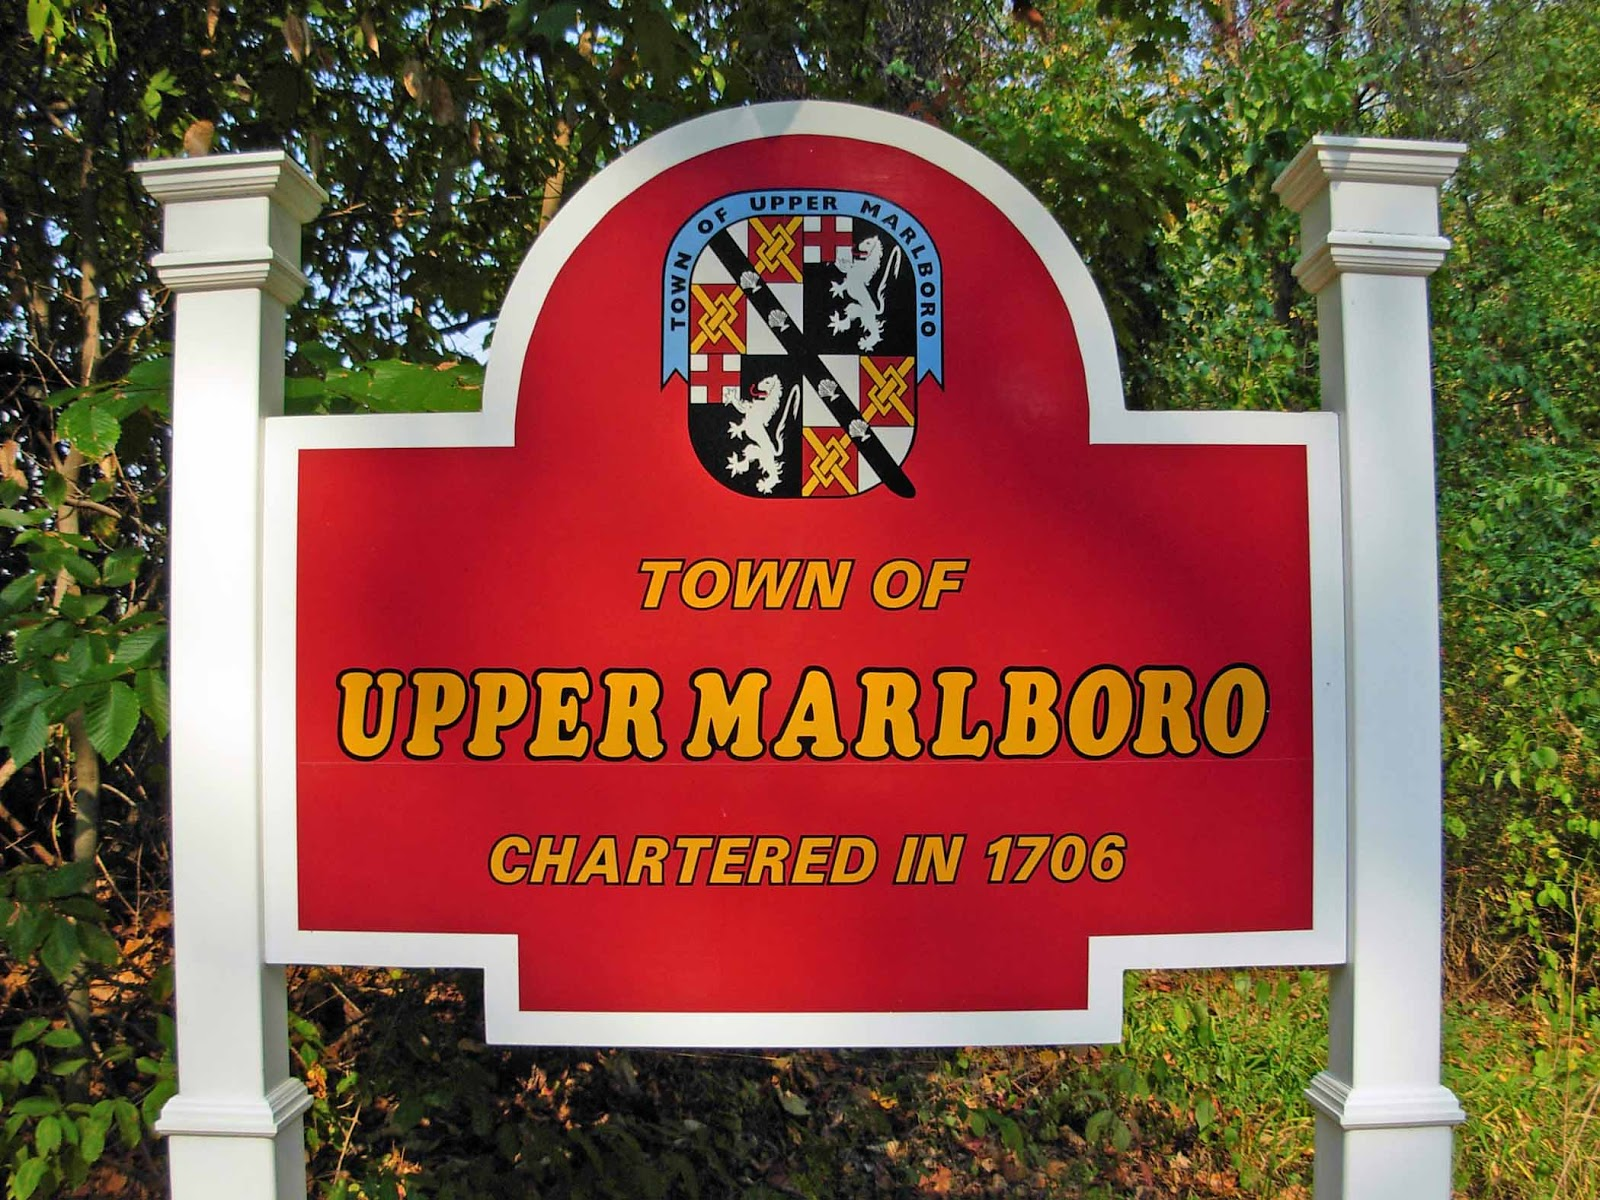 upper marlboro View apartments for rent in upper marlboro, md 32 condos rental listings are currently available compare rentals, see map views and save your favorite apartments.